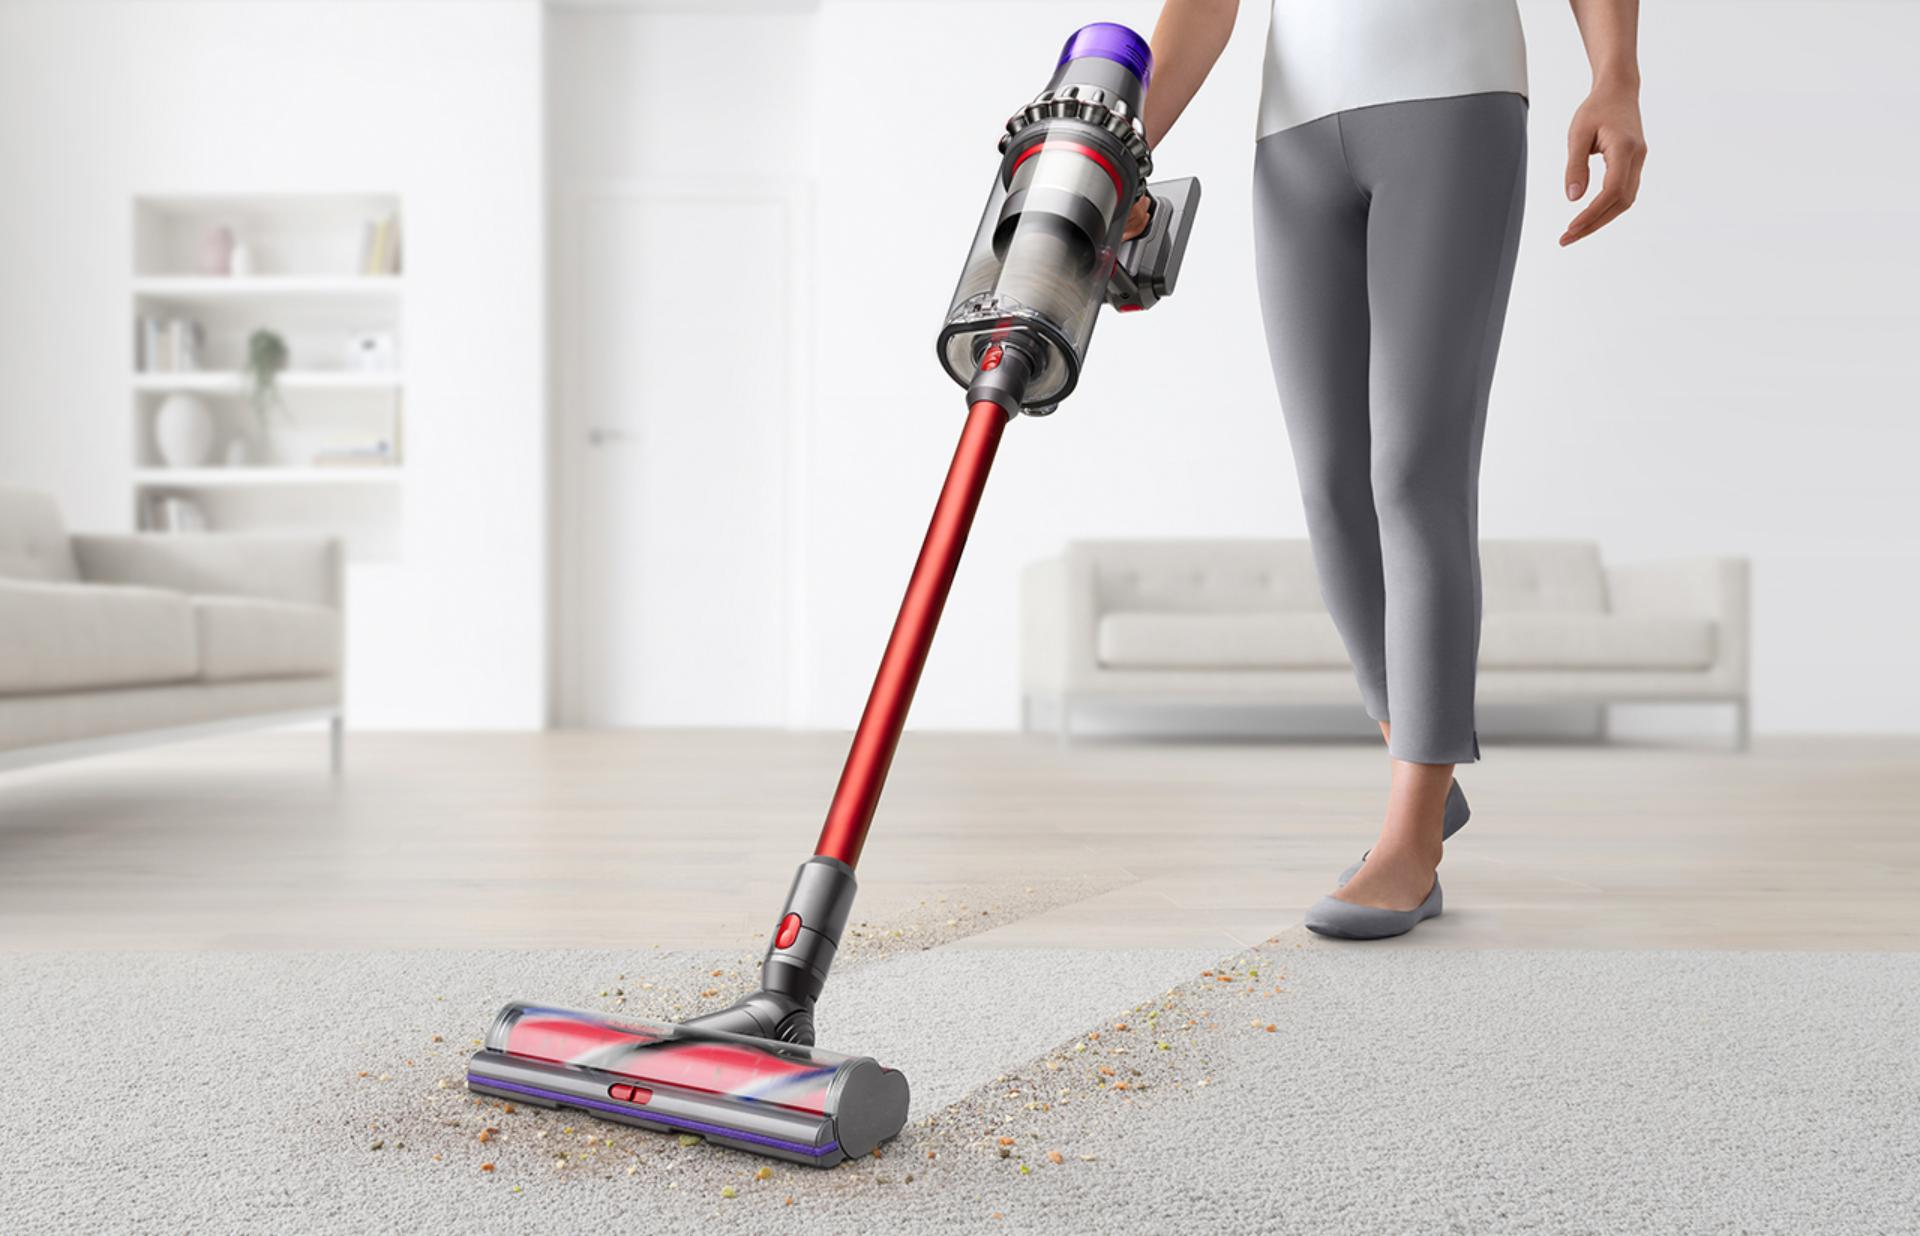 Dyson Outsize being used on carpet